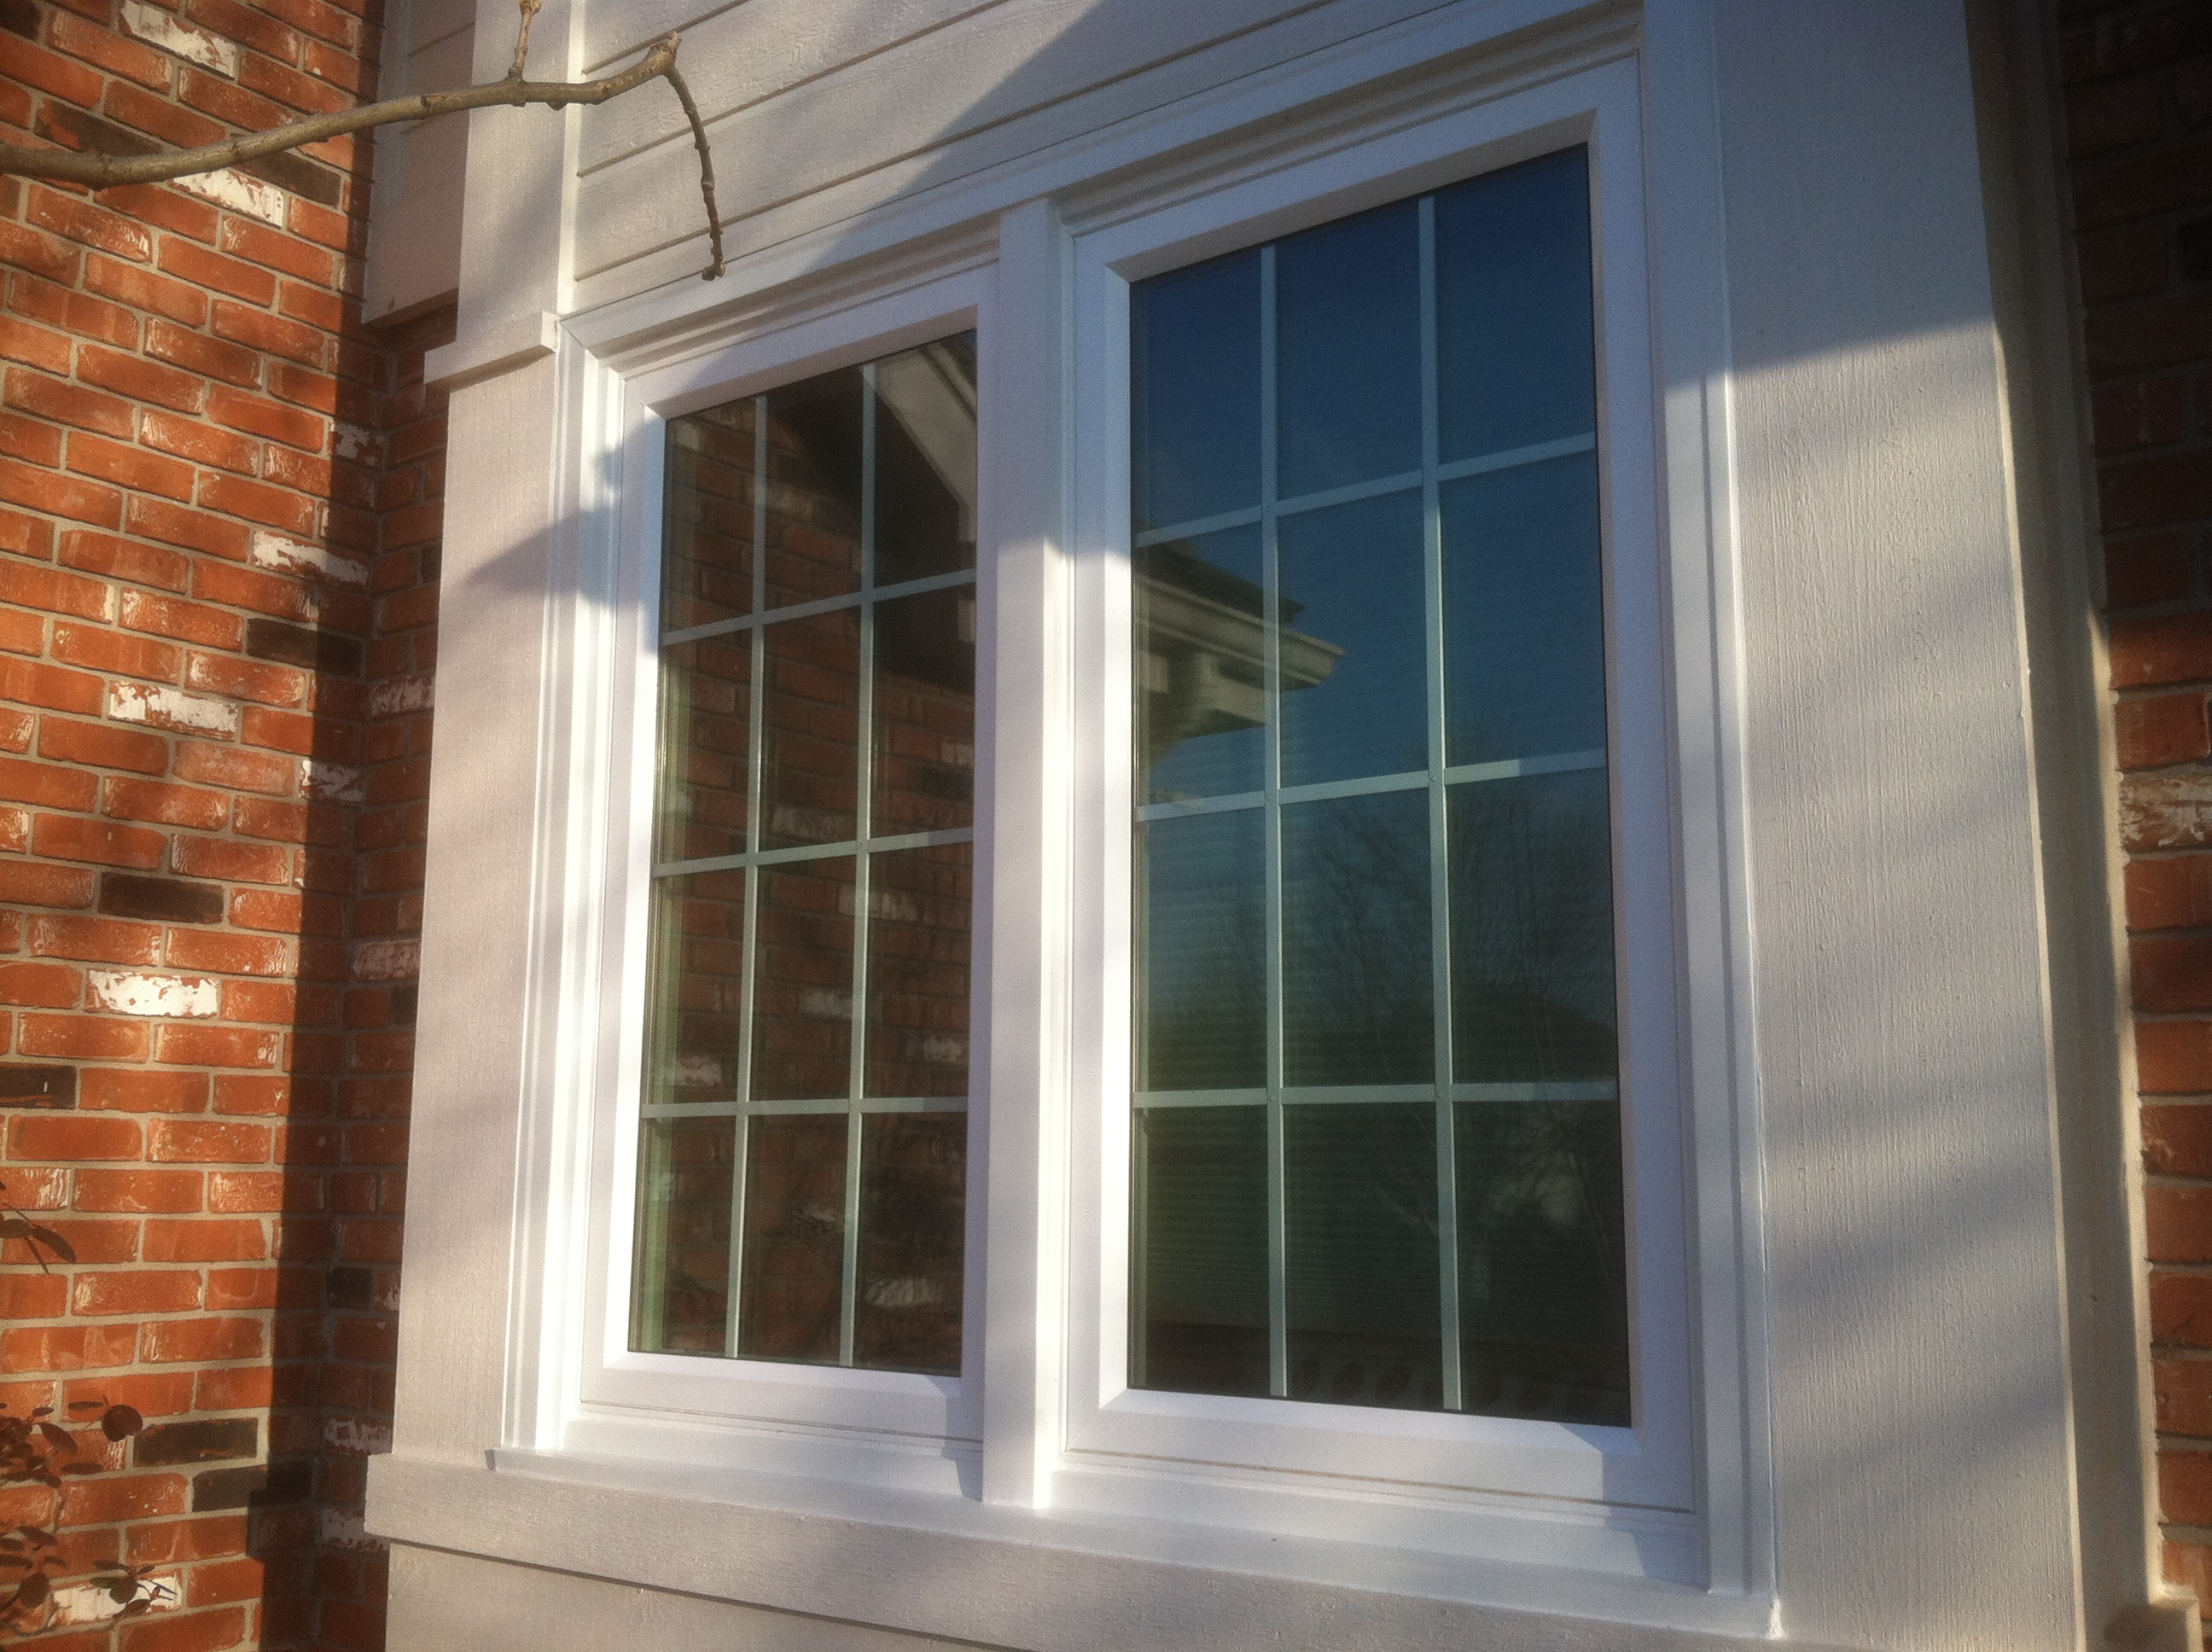 Vinyl replacement window omaha midlands siding co omaha ne for Vinyl windows company